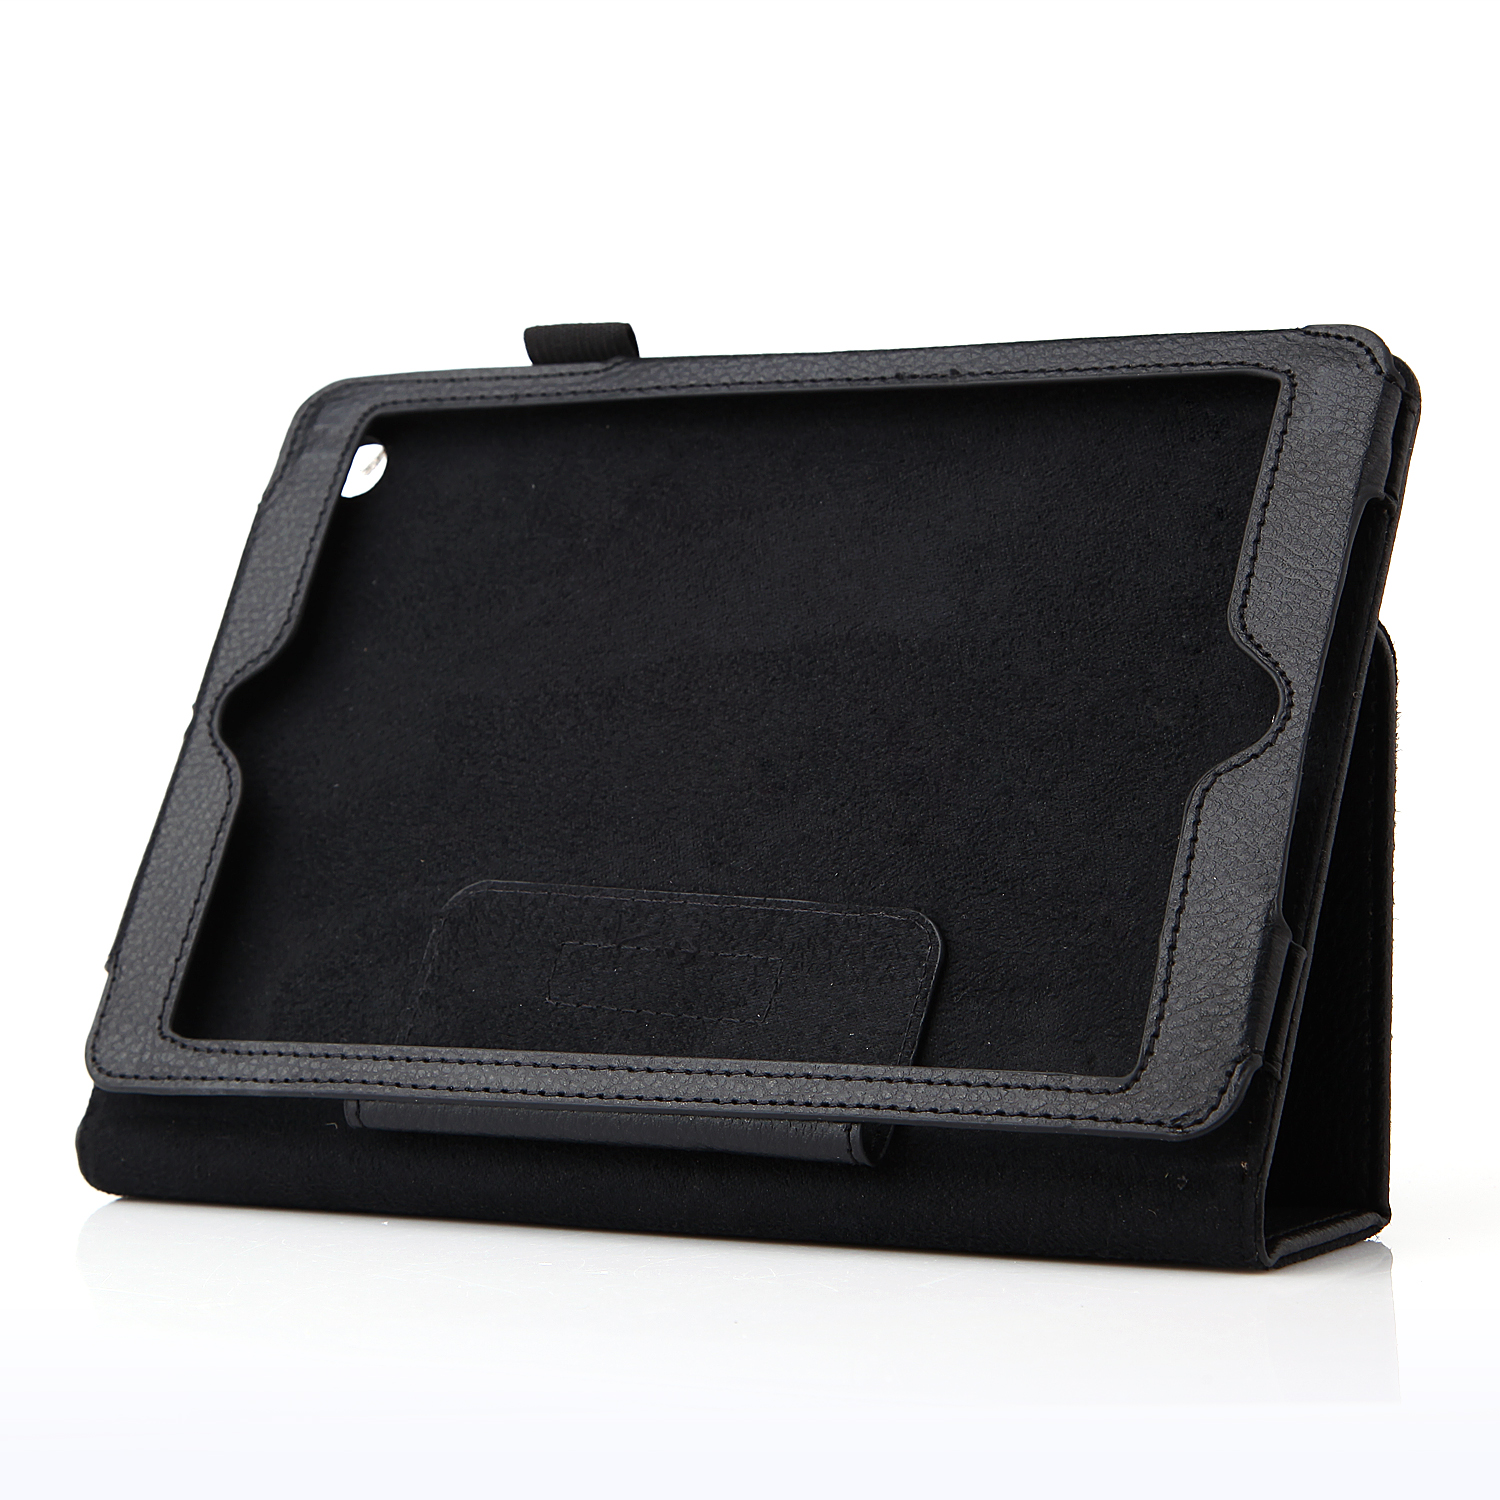 High Quality Leather Case For ONDA V811/V812 Tablet Black